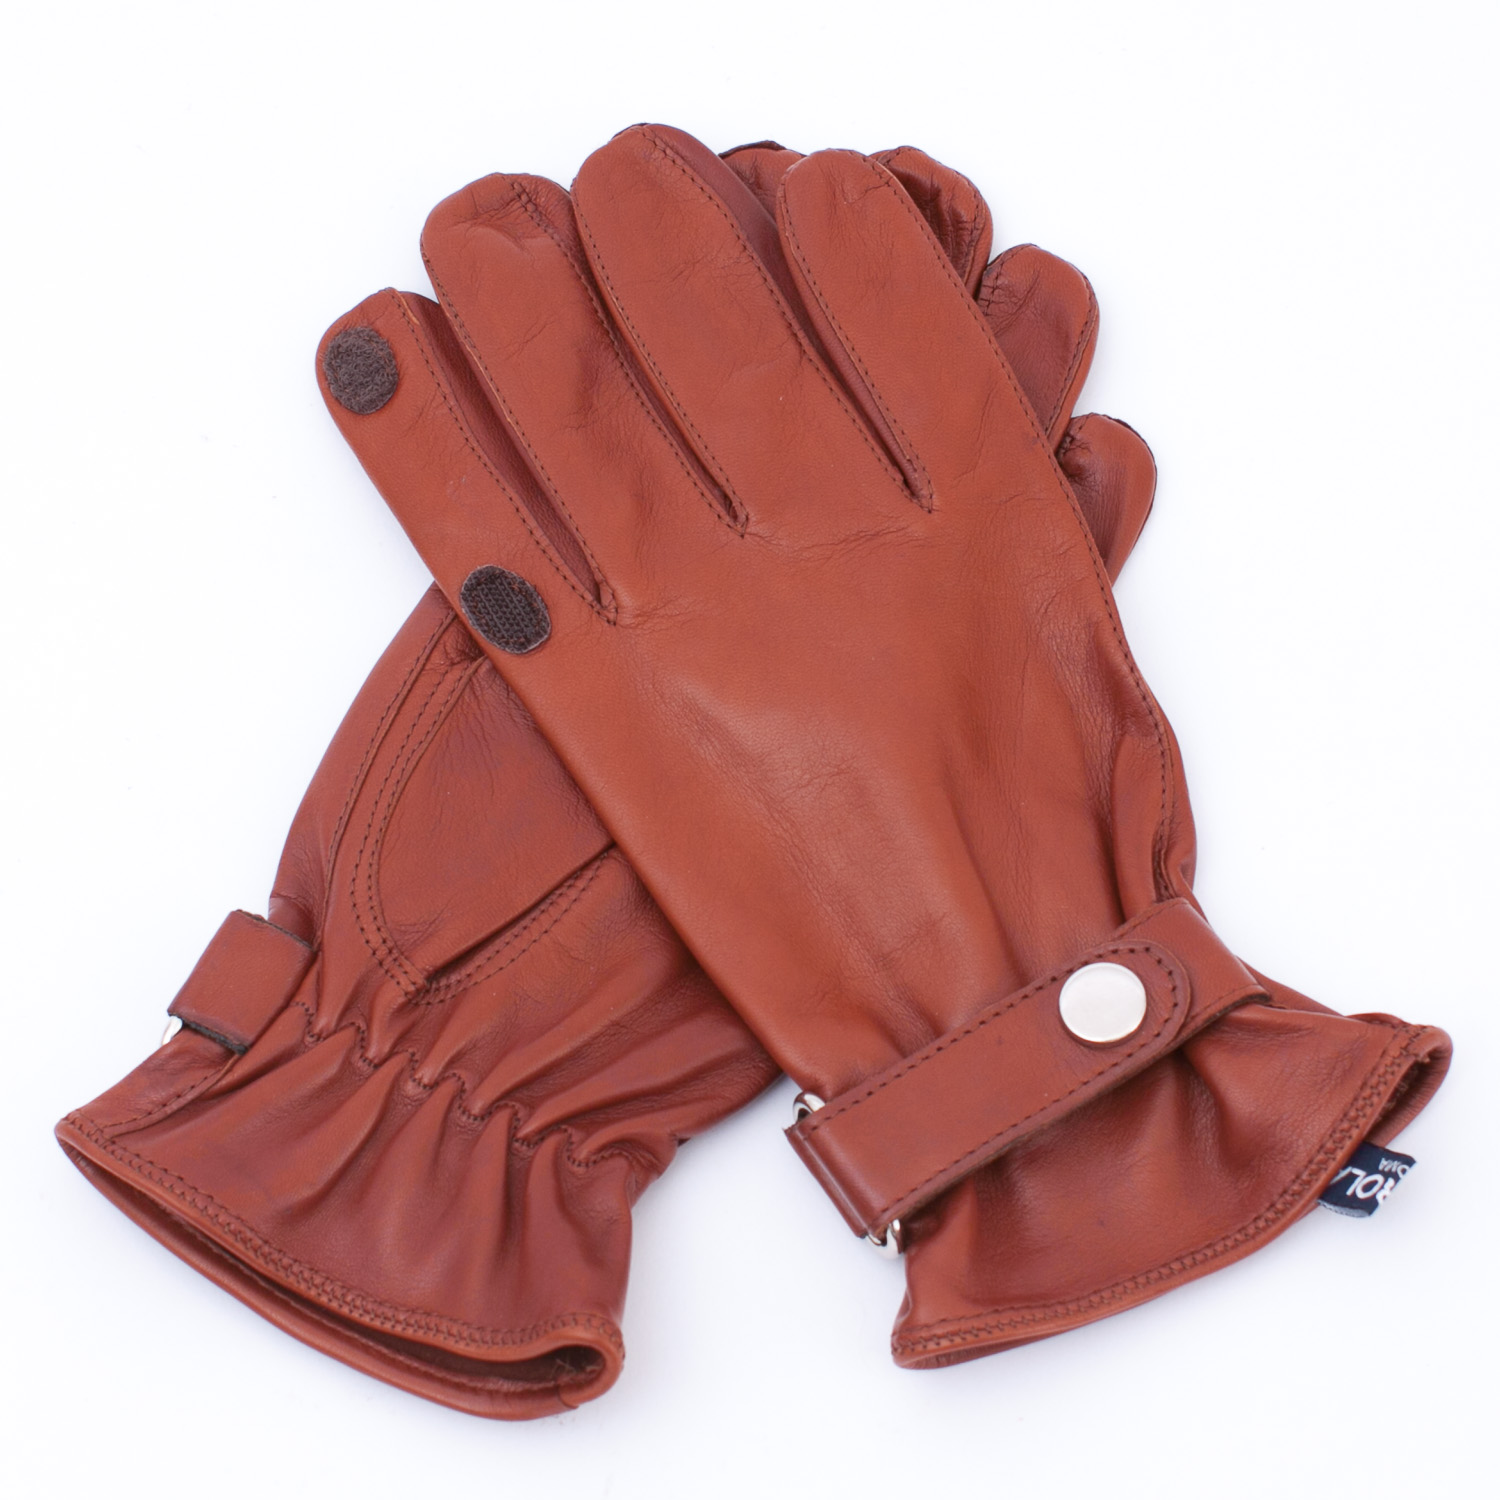 Merola Shooting Glove